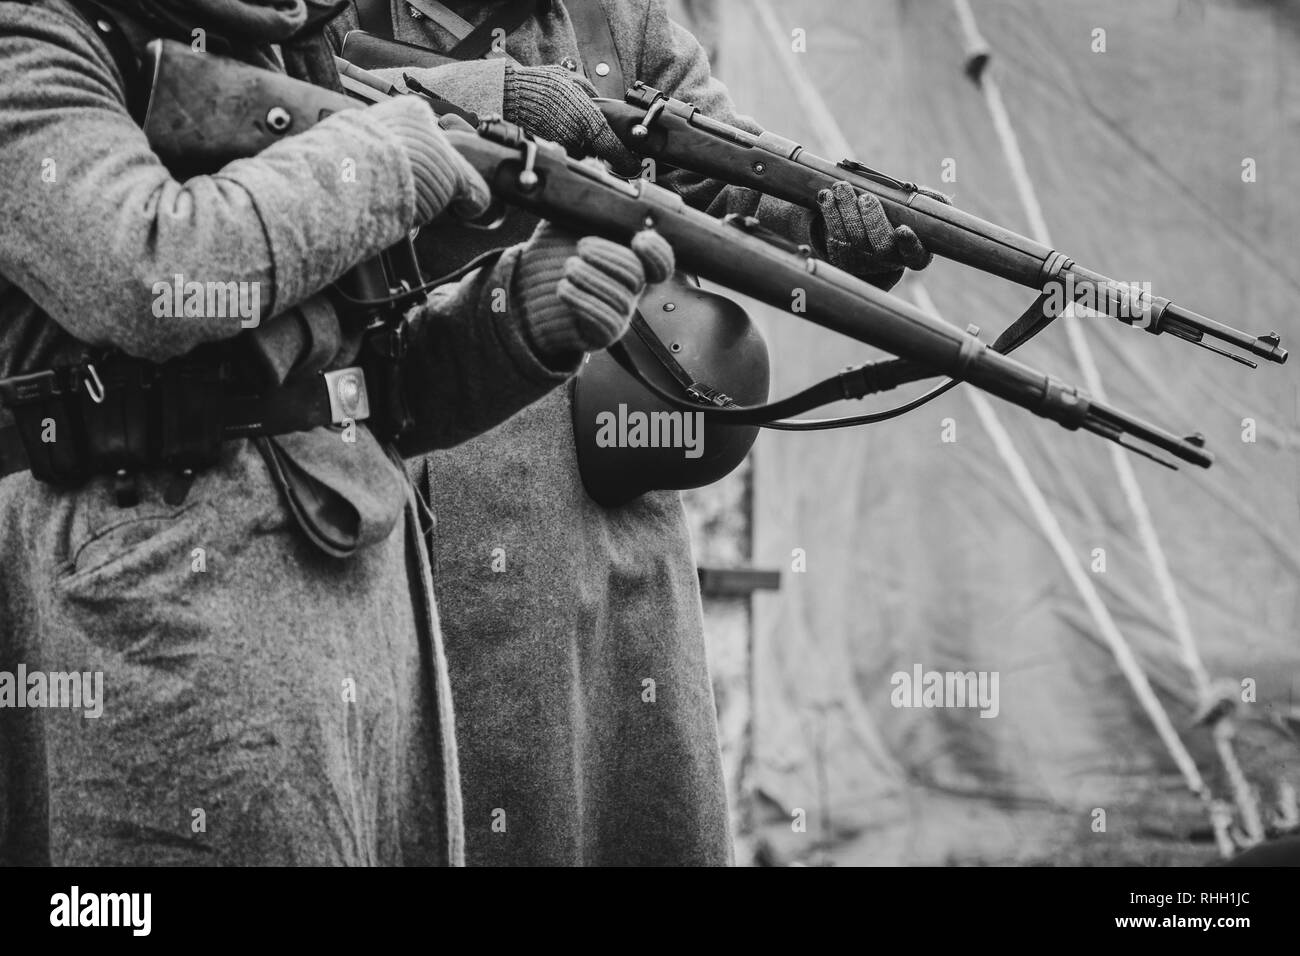 The soldiers of the German army the second world war with rifles - Stock Image